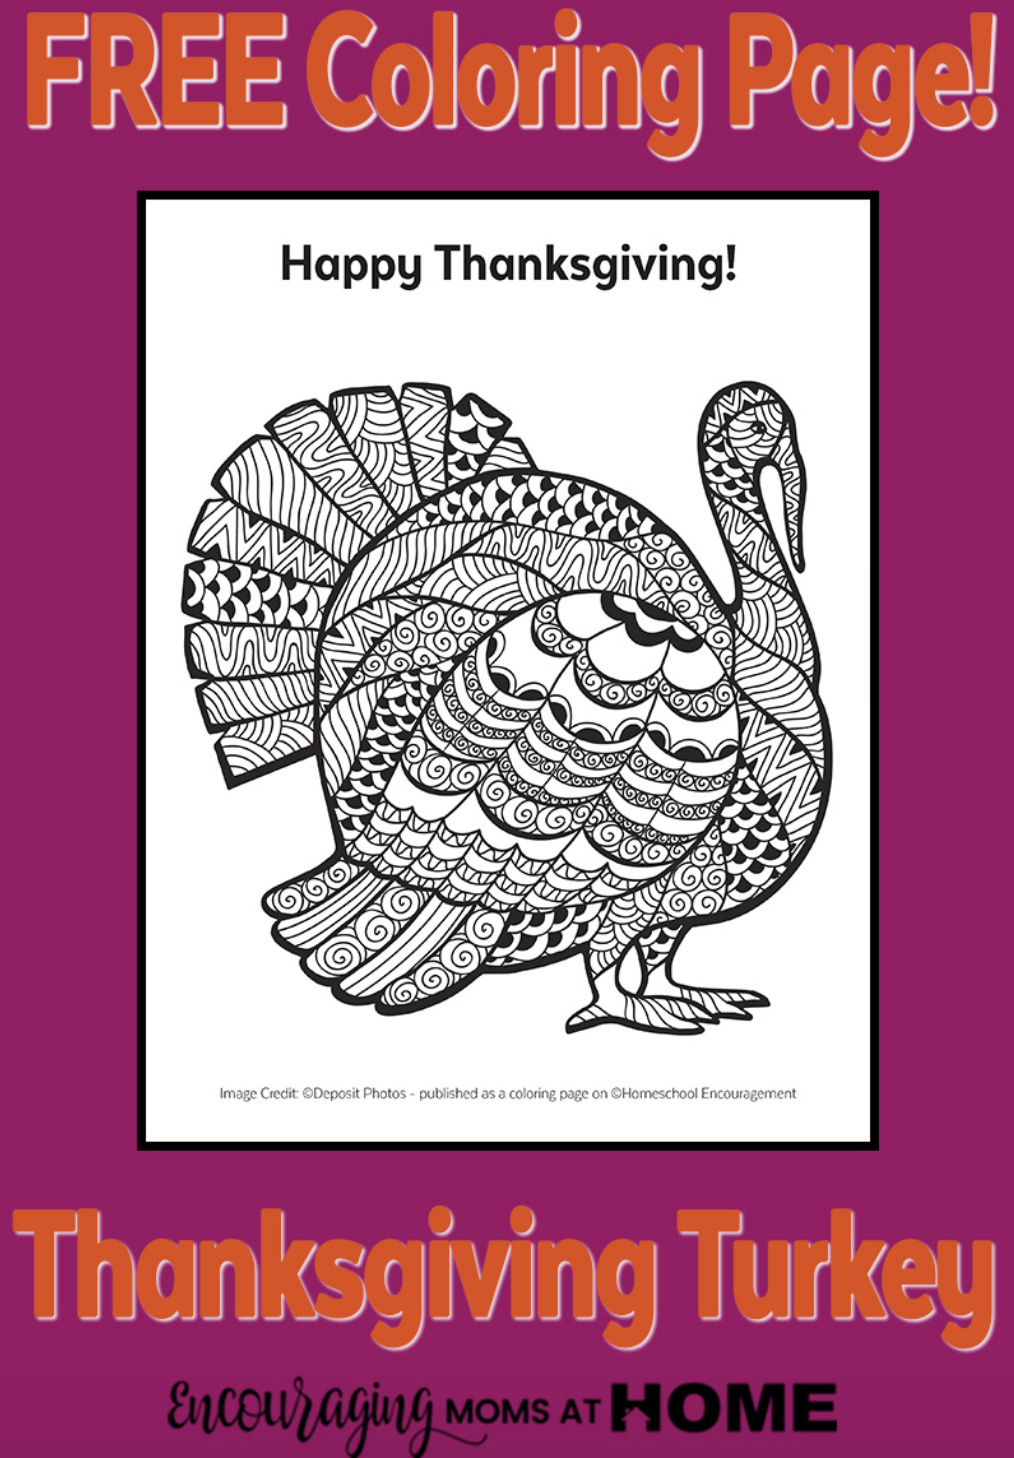 Thanksgiving Coloring Page. Part of Free Thanksgiving Printables Round-Up. Over 50 free Thanksgiving printables including decor, planners, labels, food decoration, and more! #thanksgiving #free #printable #freeprintable #thanksgivingprintable